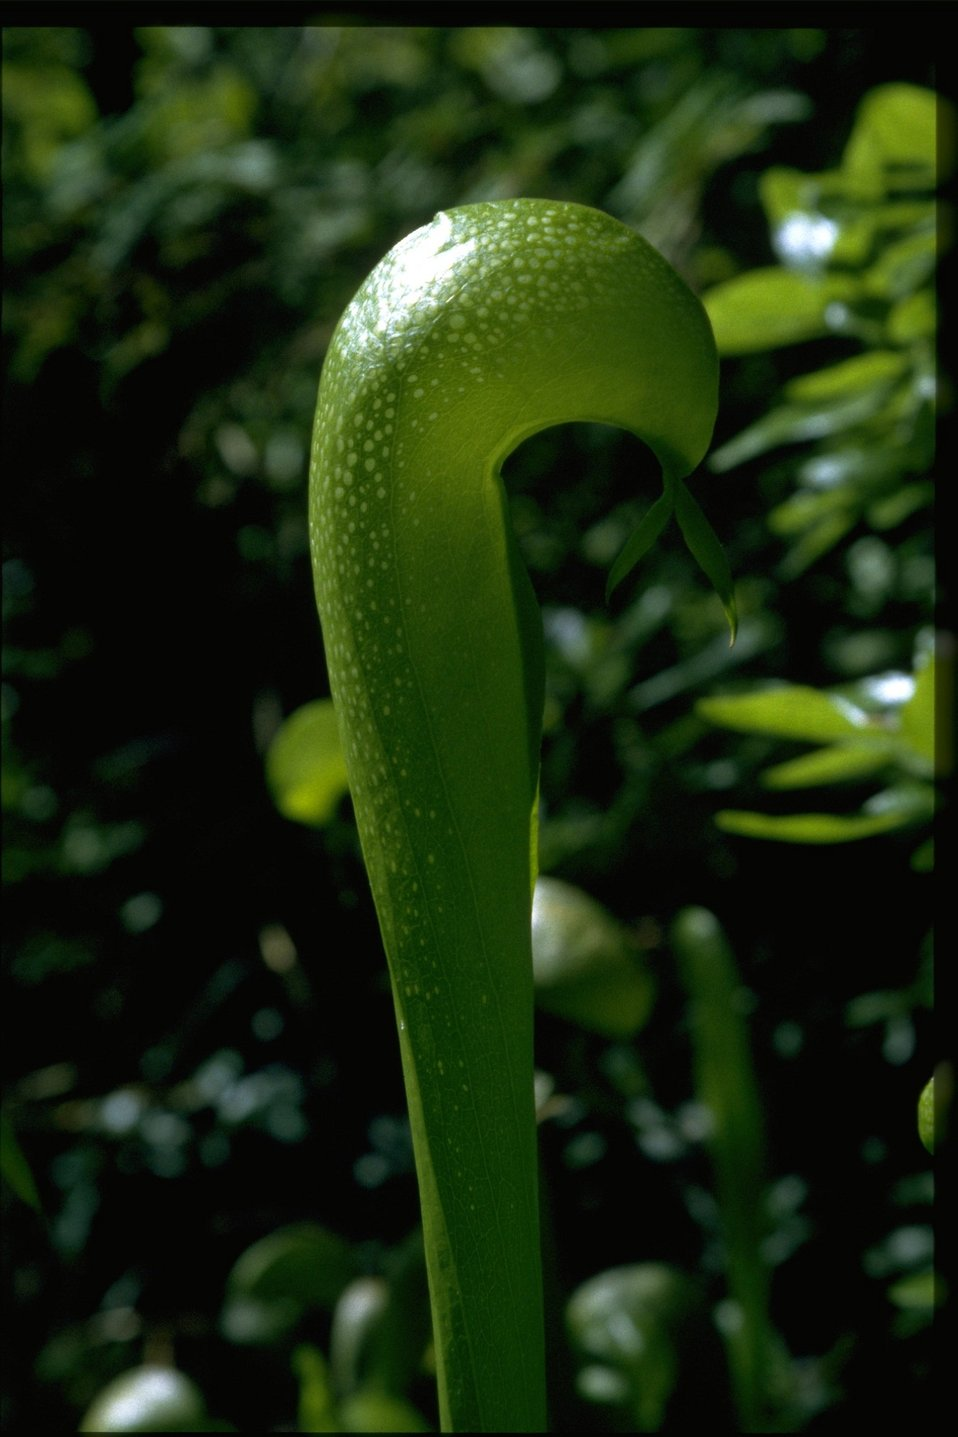 Closeup shot of Darlingtonia californica.